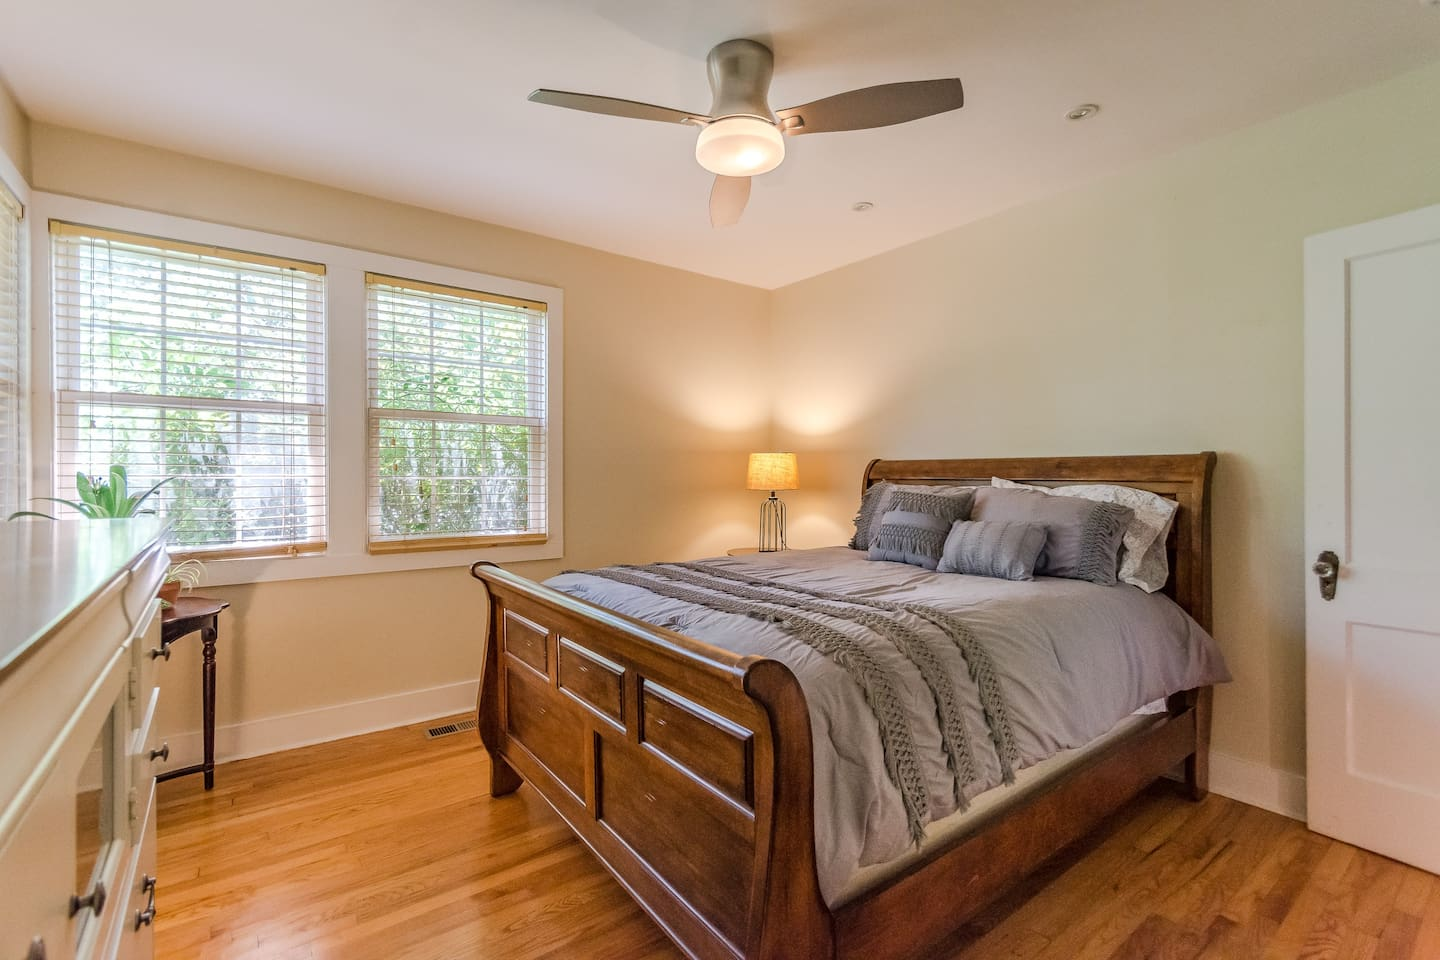 This room is perfect for a Wilmington visit! The greenery outside of the windows gives a calming feeling and gives total privacy. The mattress is top quality and is perfect for a great night's sleep. There is plenty of storage in the large dresser.